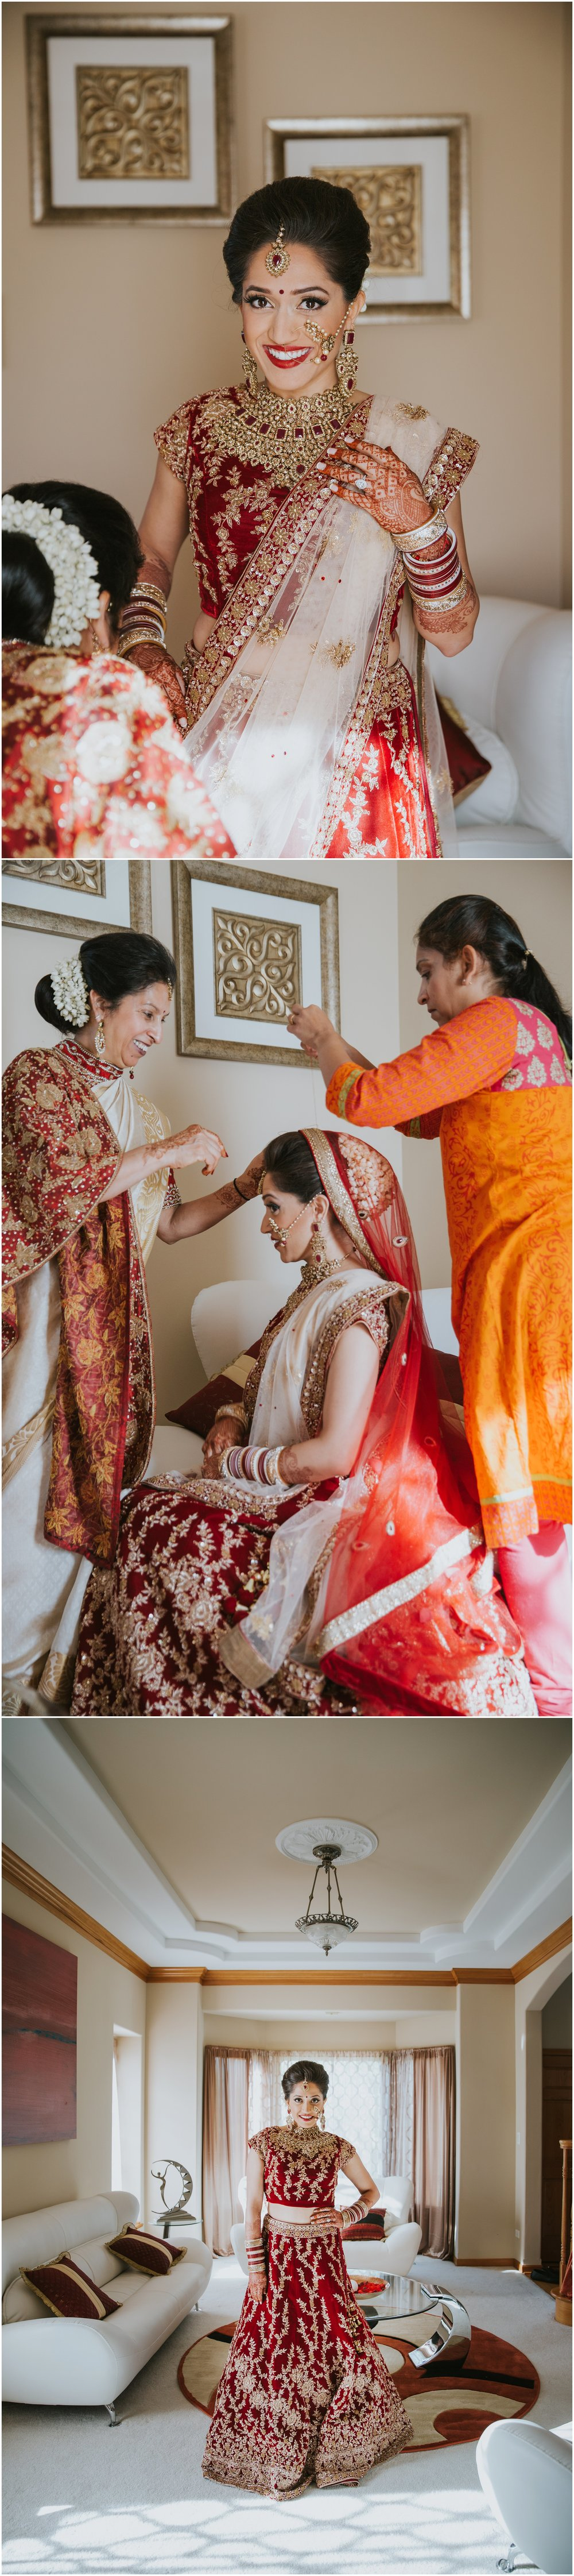 Le Cape Weddings - South Asian Wedding in Illinois - Tanvi and Anshul -8006_LuxuryDestinationPhotographer.jpg